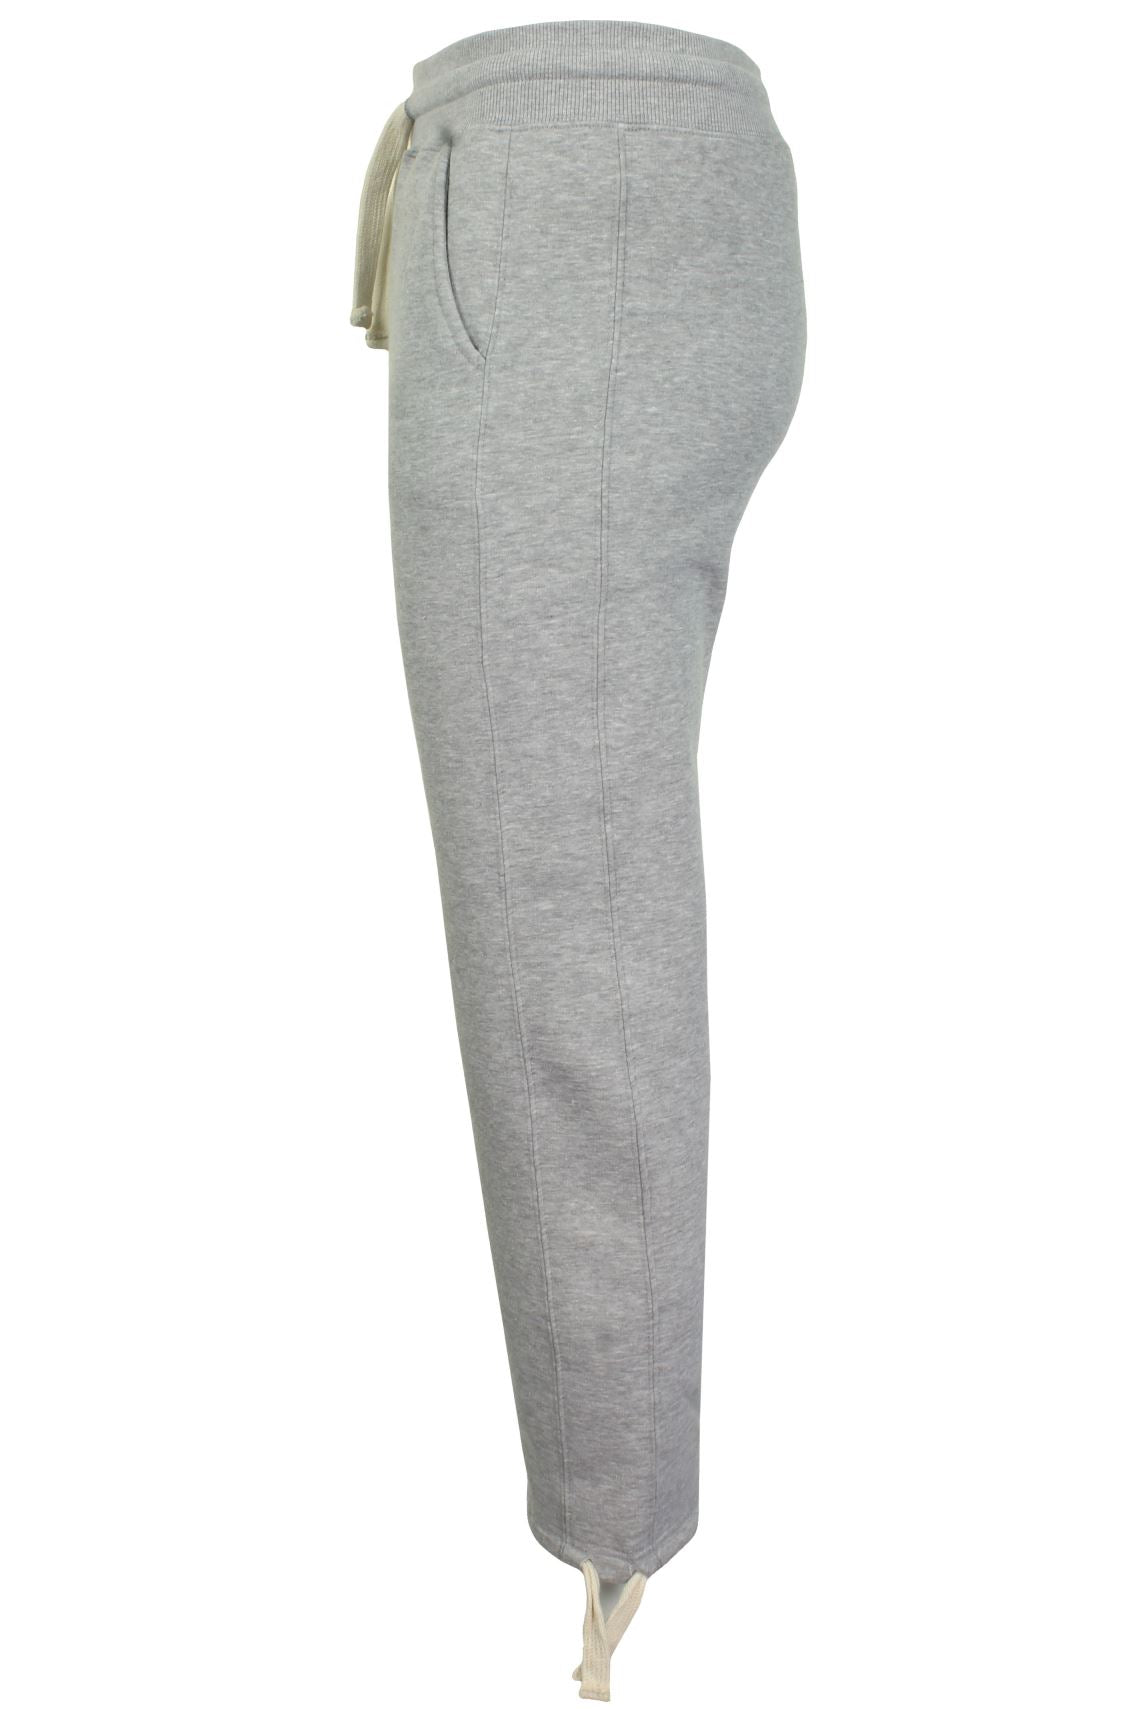 Xact Men's Casual Gym Jogger Lounge Wear, 02, Xjg-0005, #colour_Light Grey